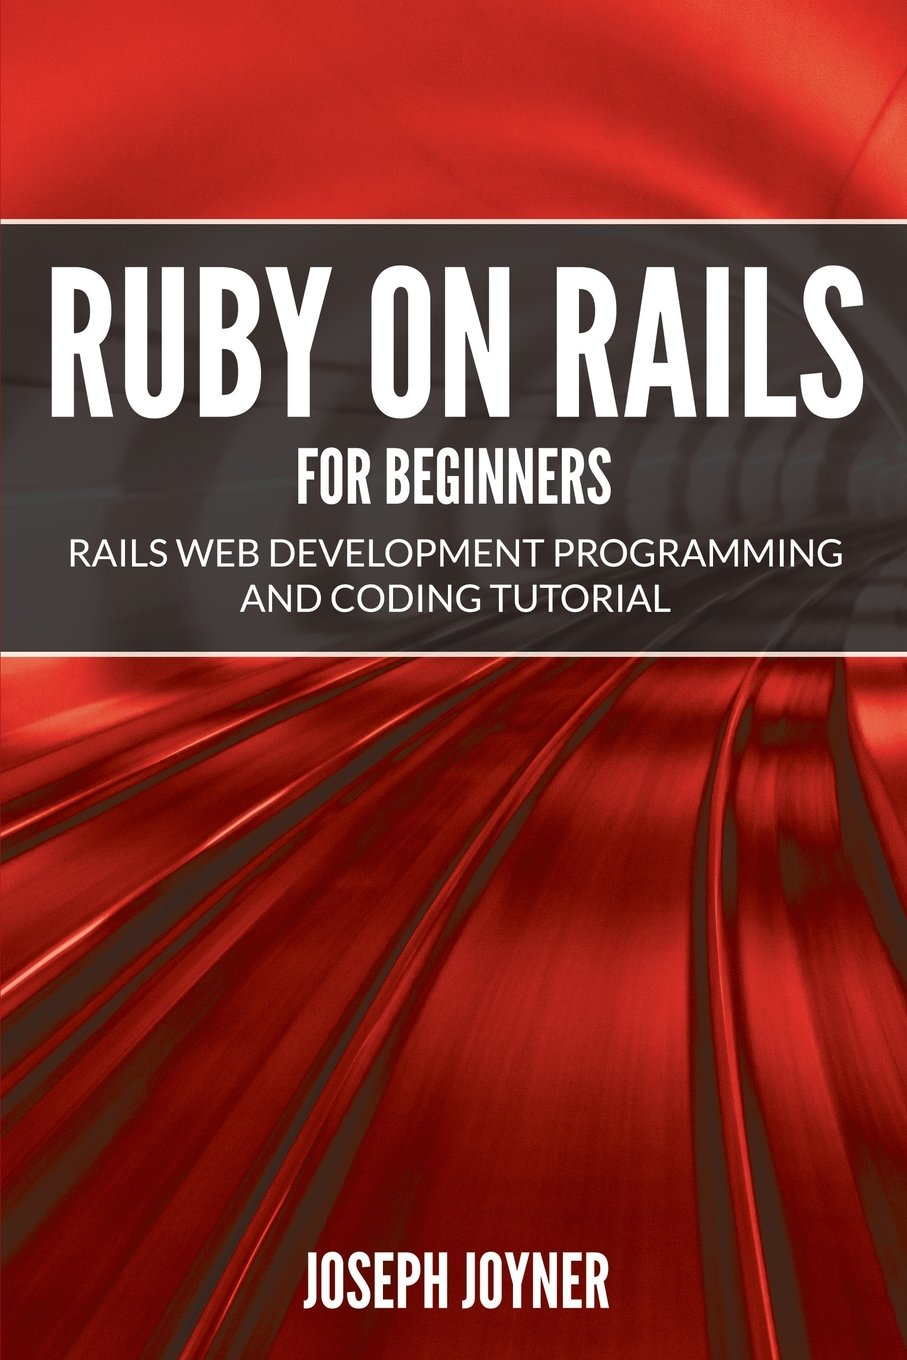 Ruby on rails for beginners rails web development programming and ruby on rails for beginners rails web development programming and coding tutorial joseph joyner 9781682121450 amazon books baditri Images